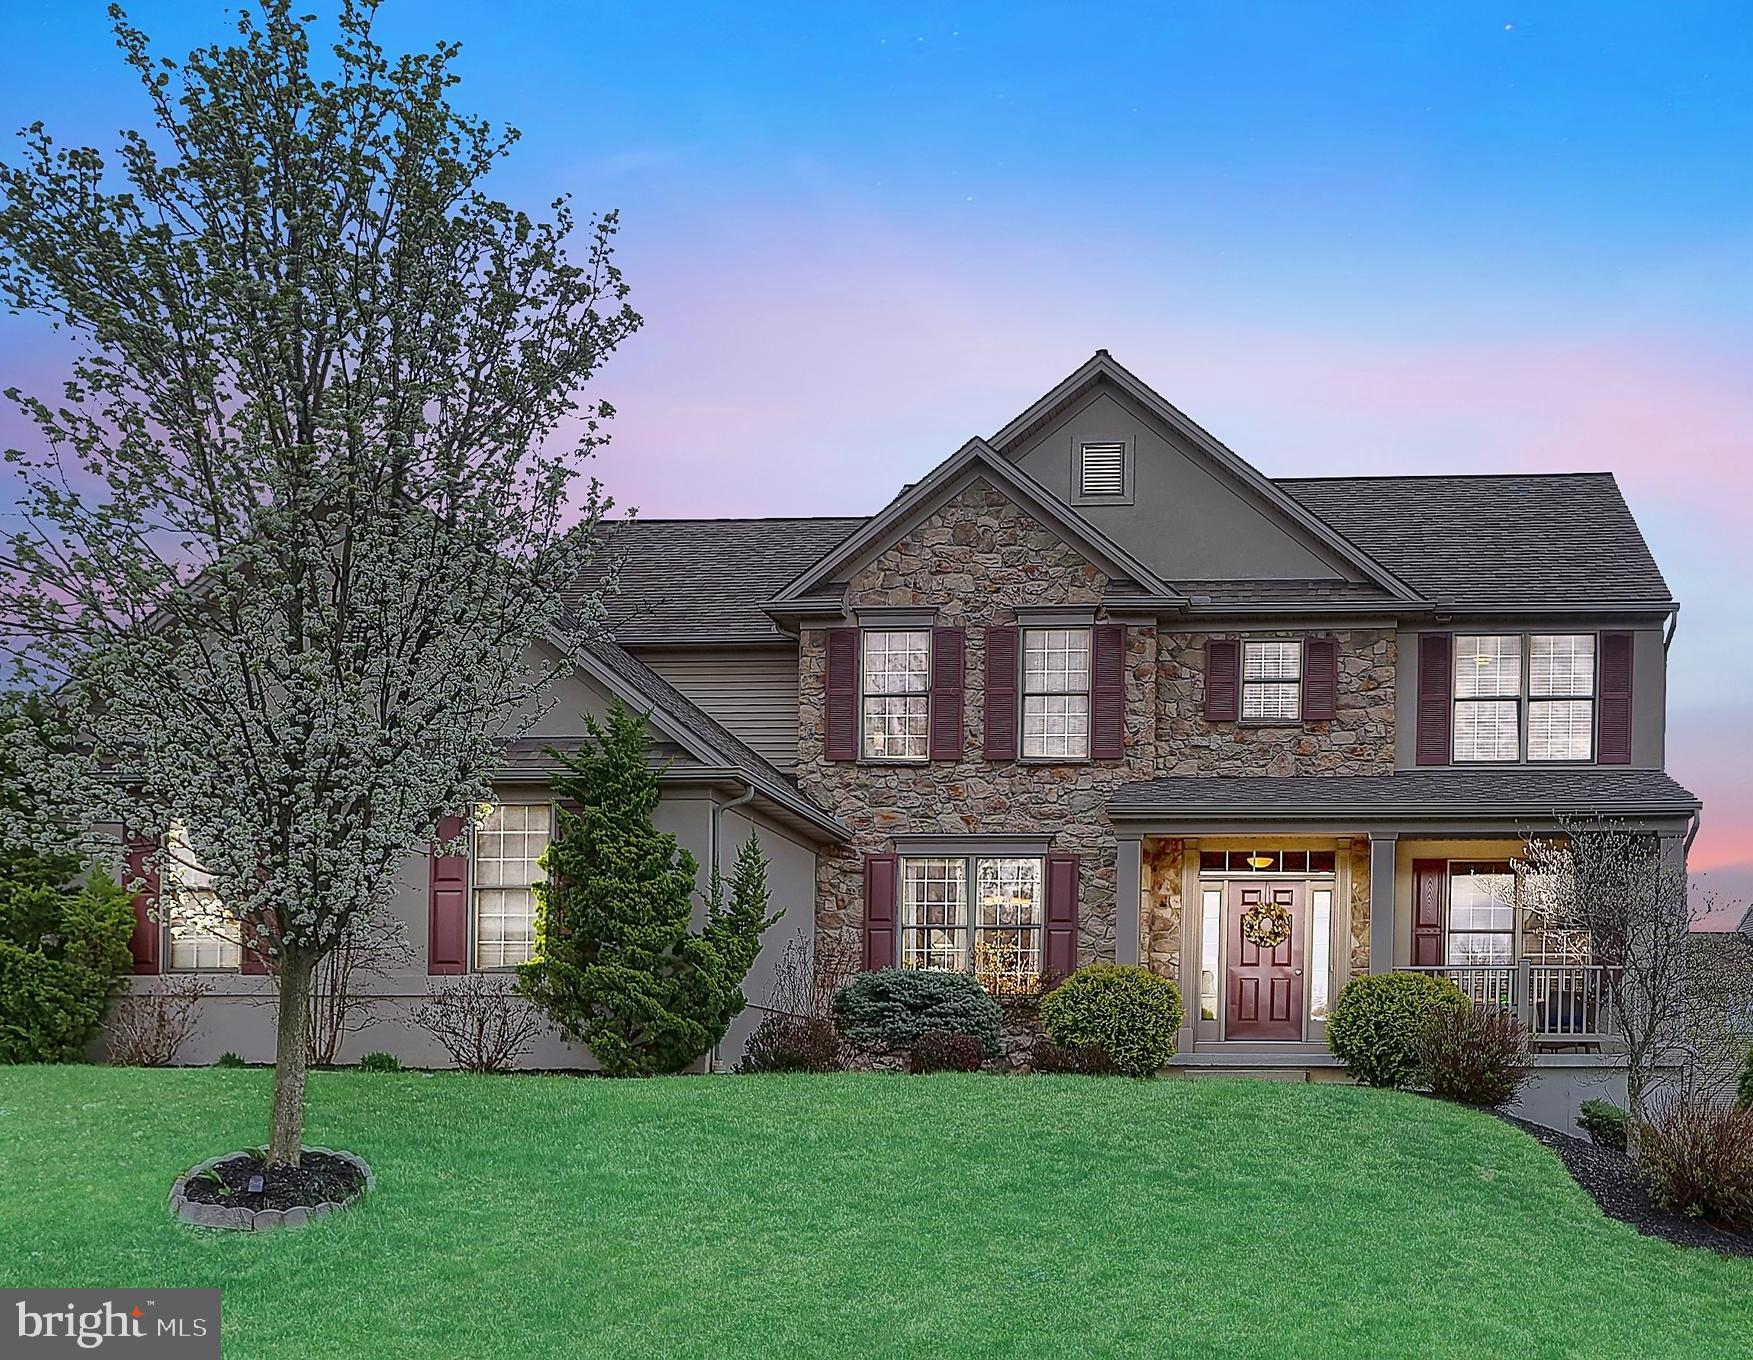 AMAZING HOME IN DESIRED LOCATION!